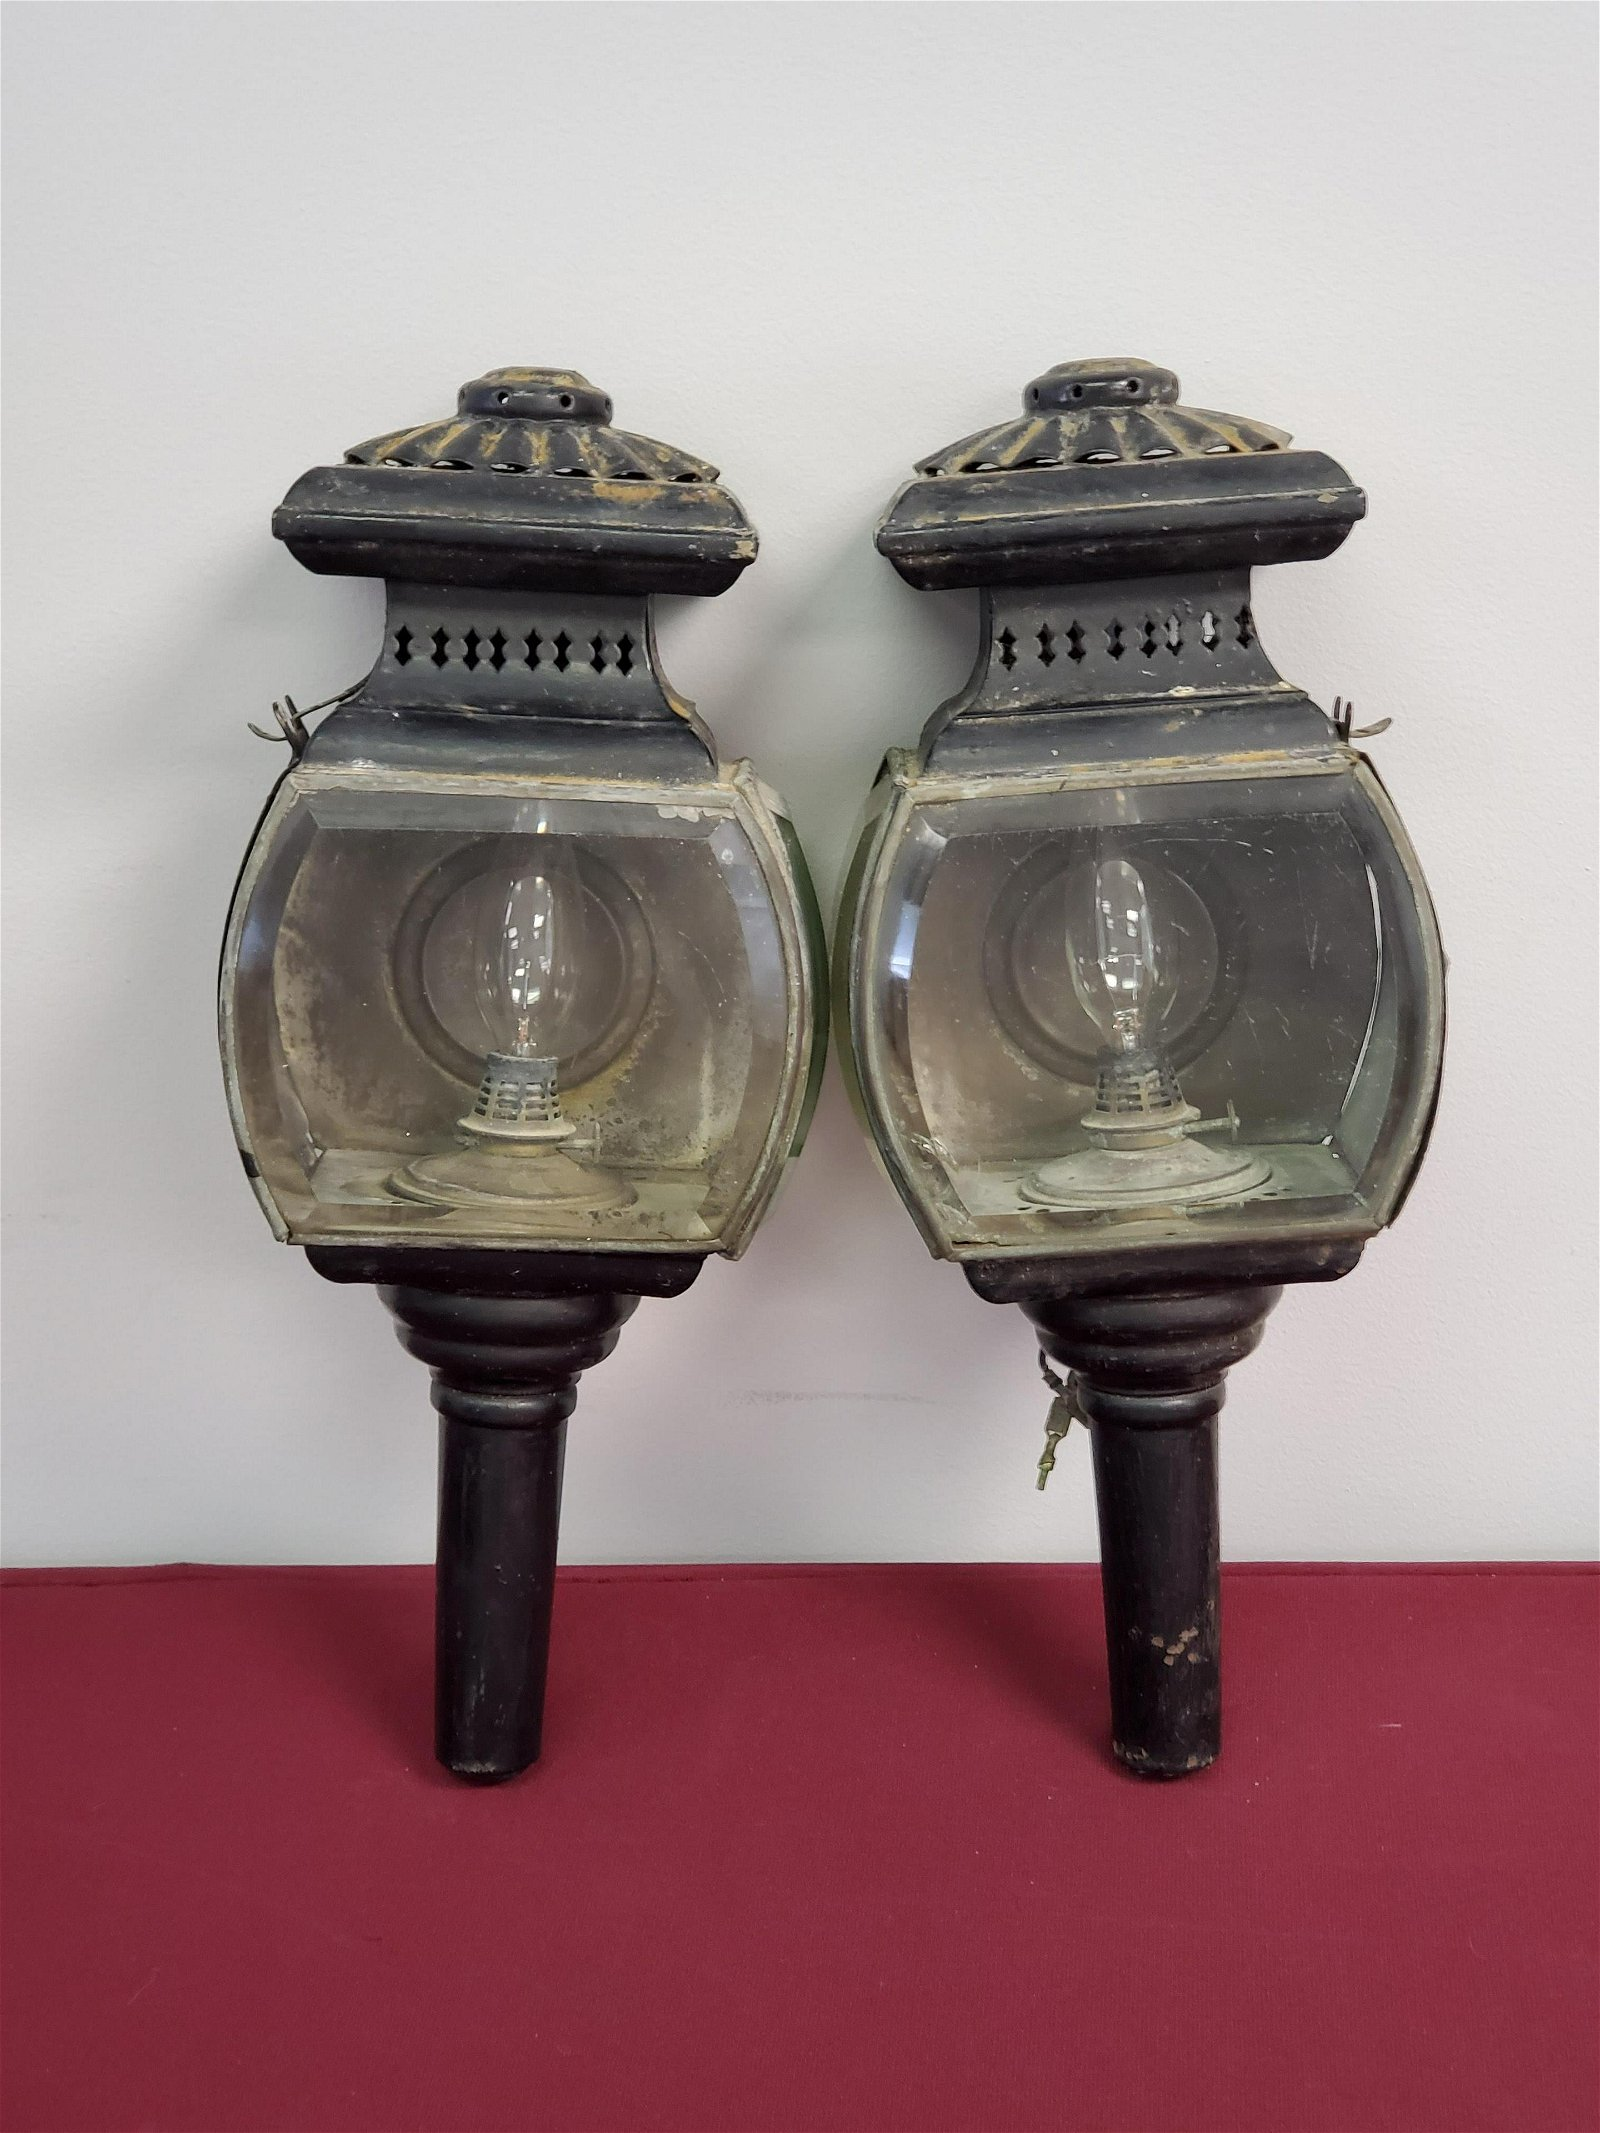 2 19C Carriage Lamps